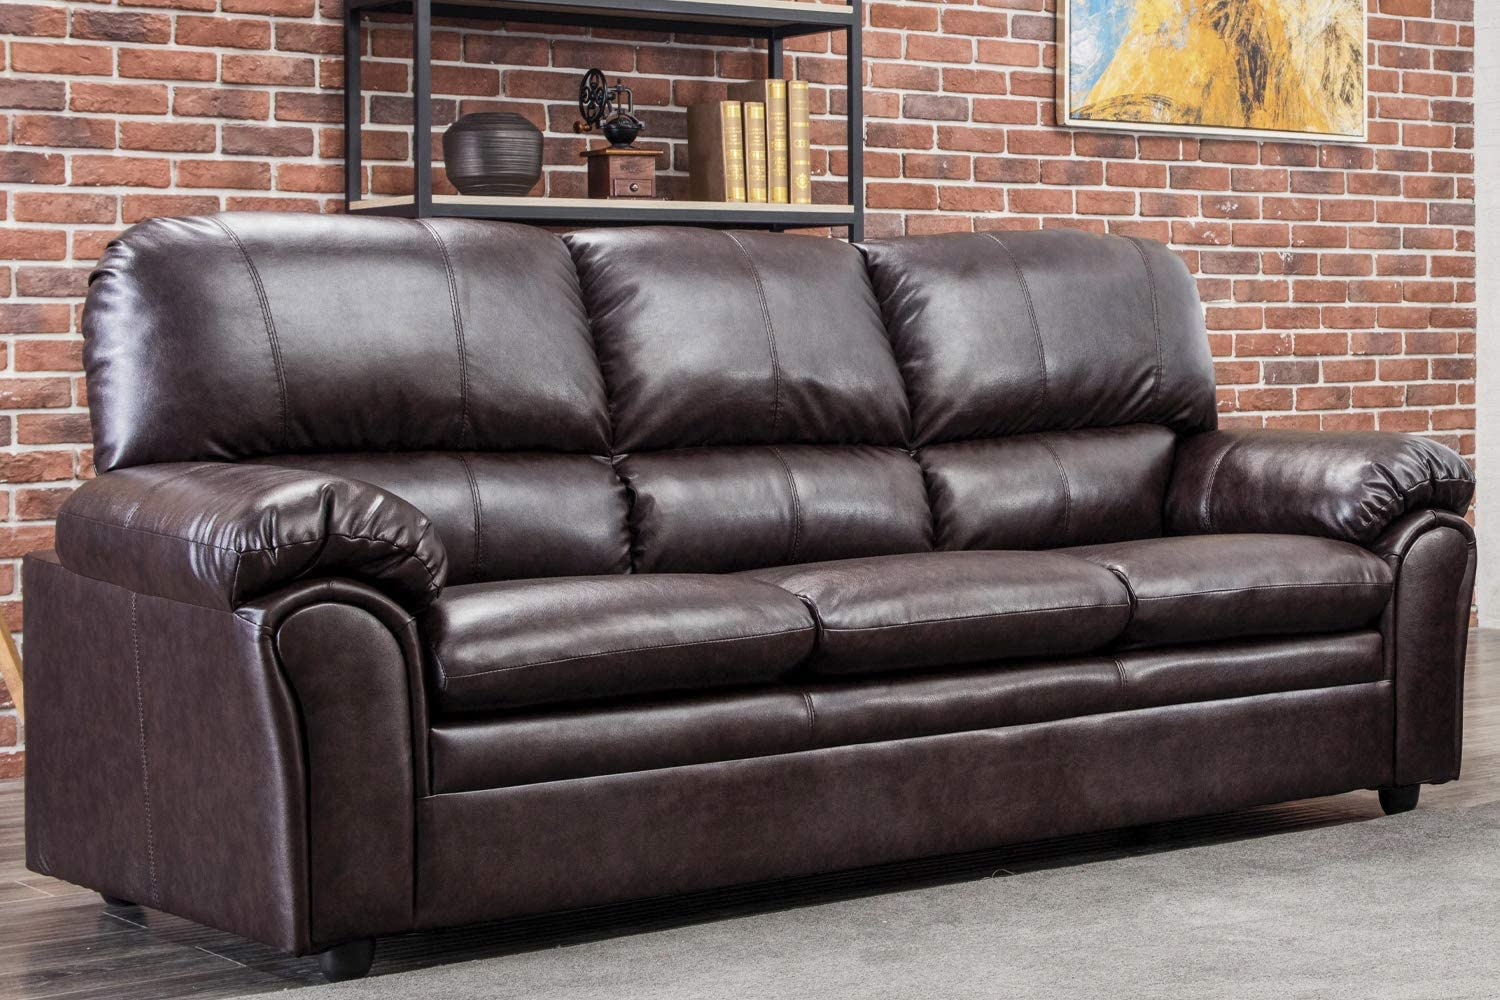 Sofa Sectional Sofa for Living Room Couches and Sofas Loveseat Modern Sofa Mid Century for Home Furniture (Three-Seater)